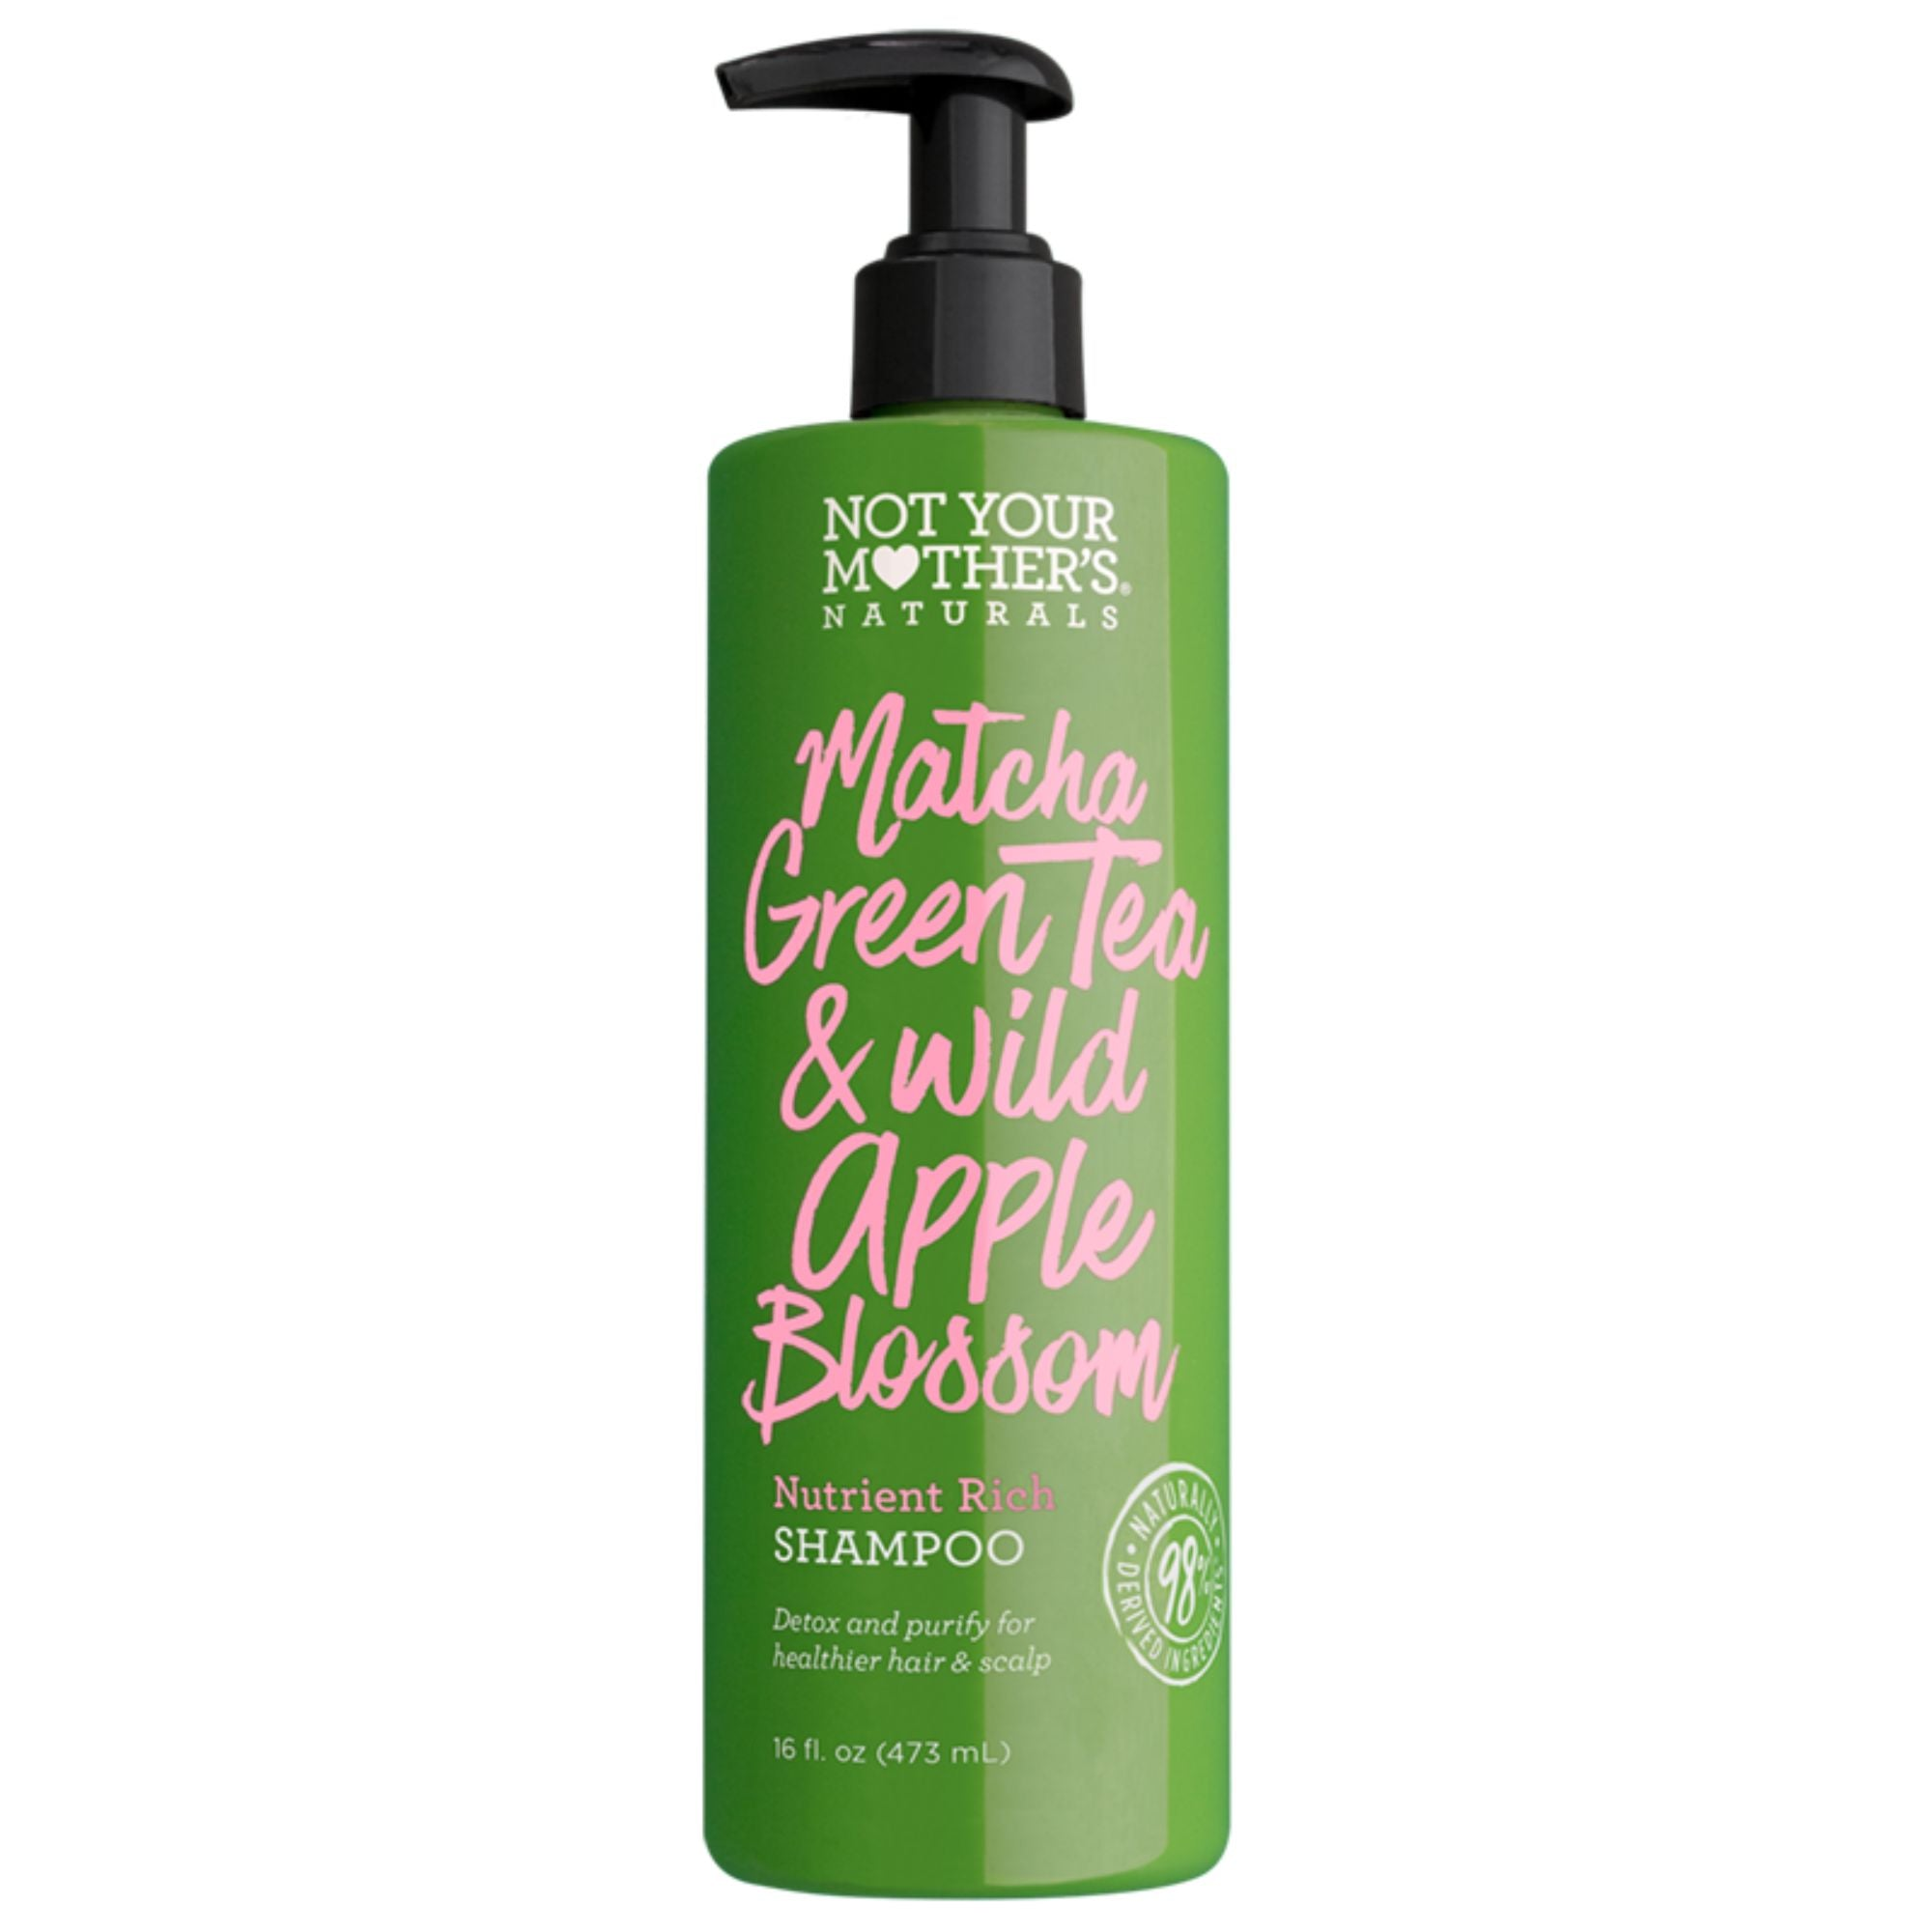 Apple & Matcha Green Tea Nutrient Rich Shampoo